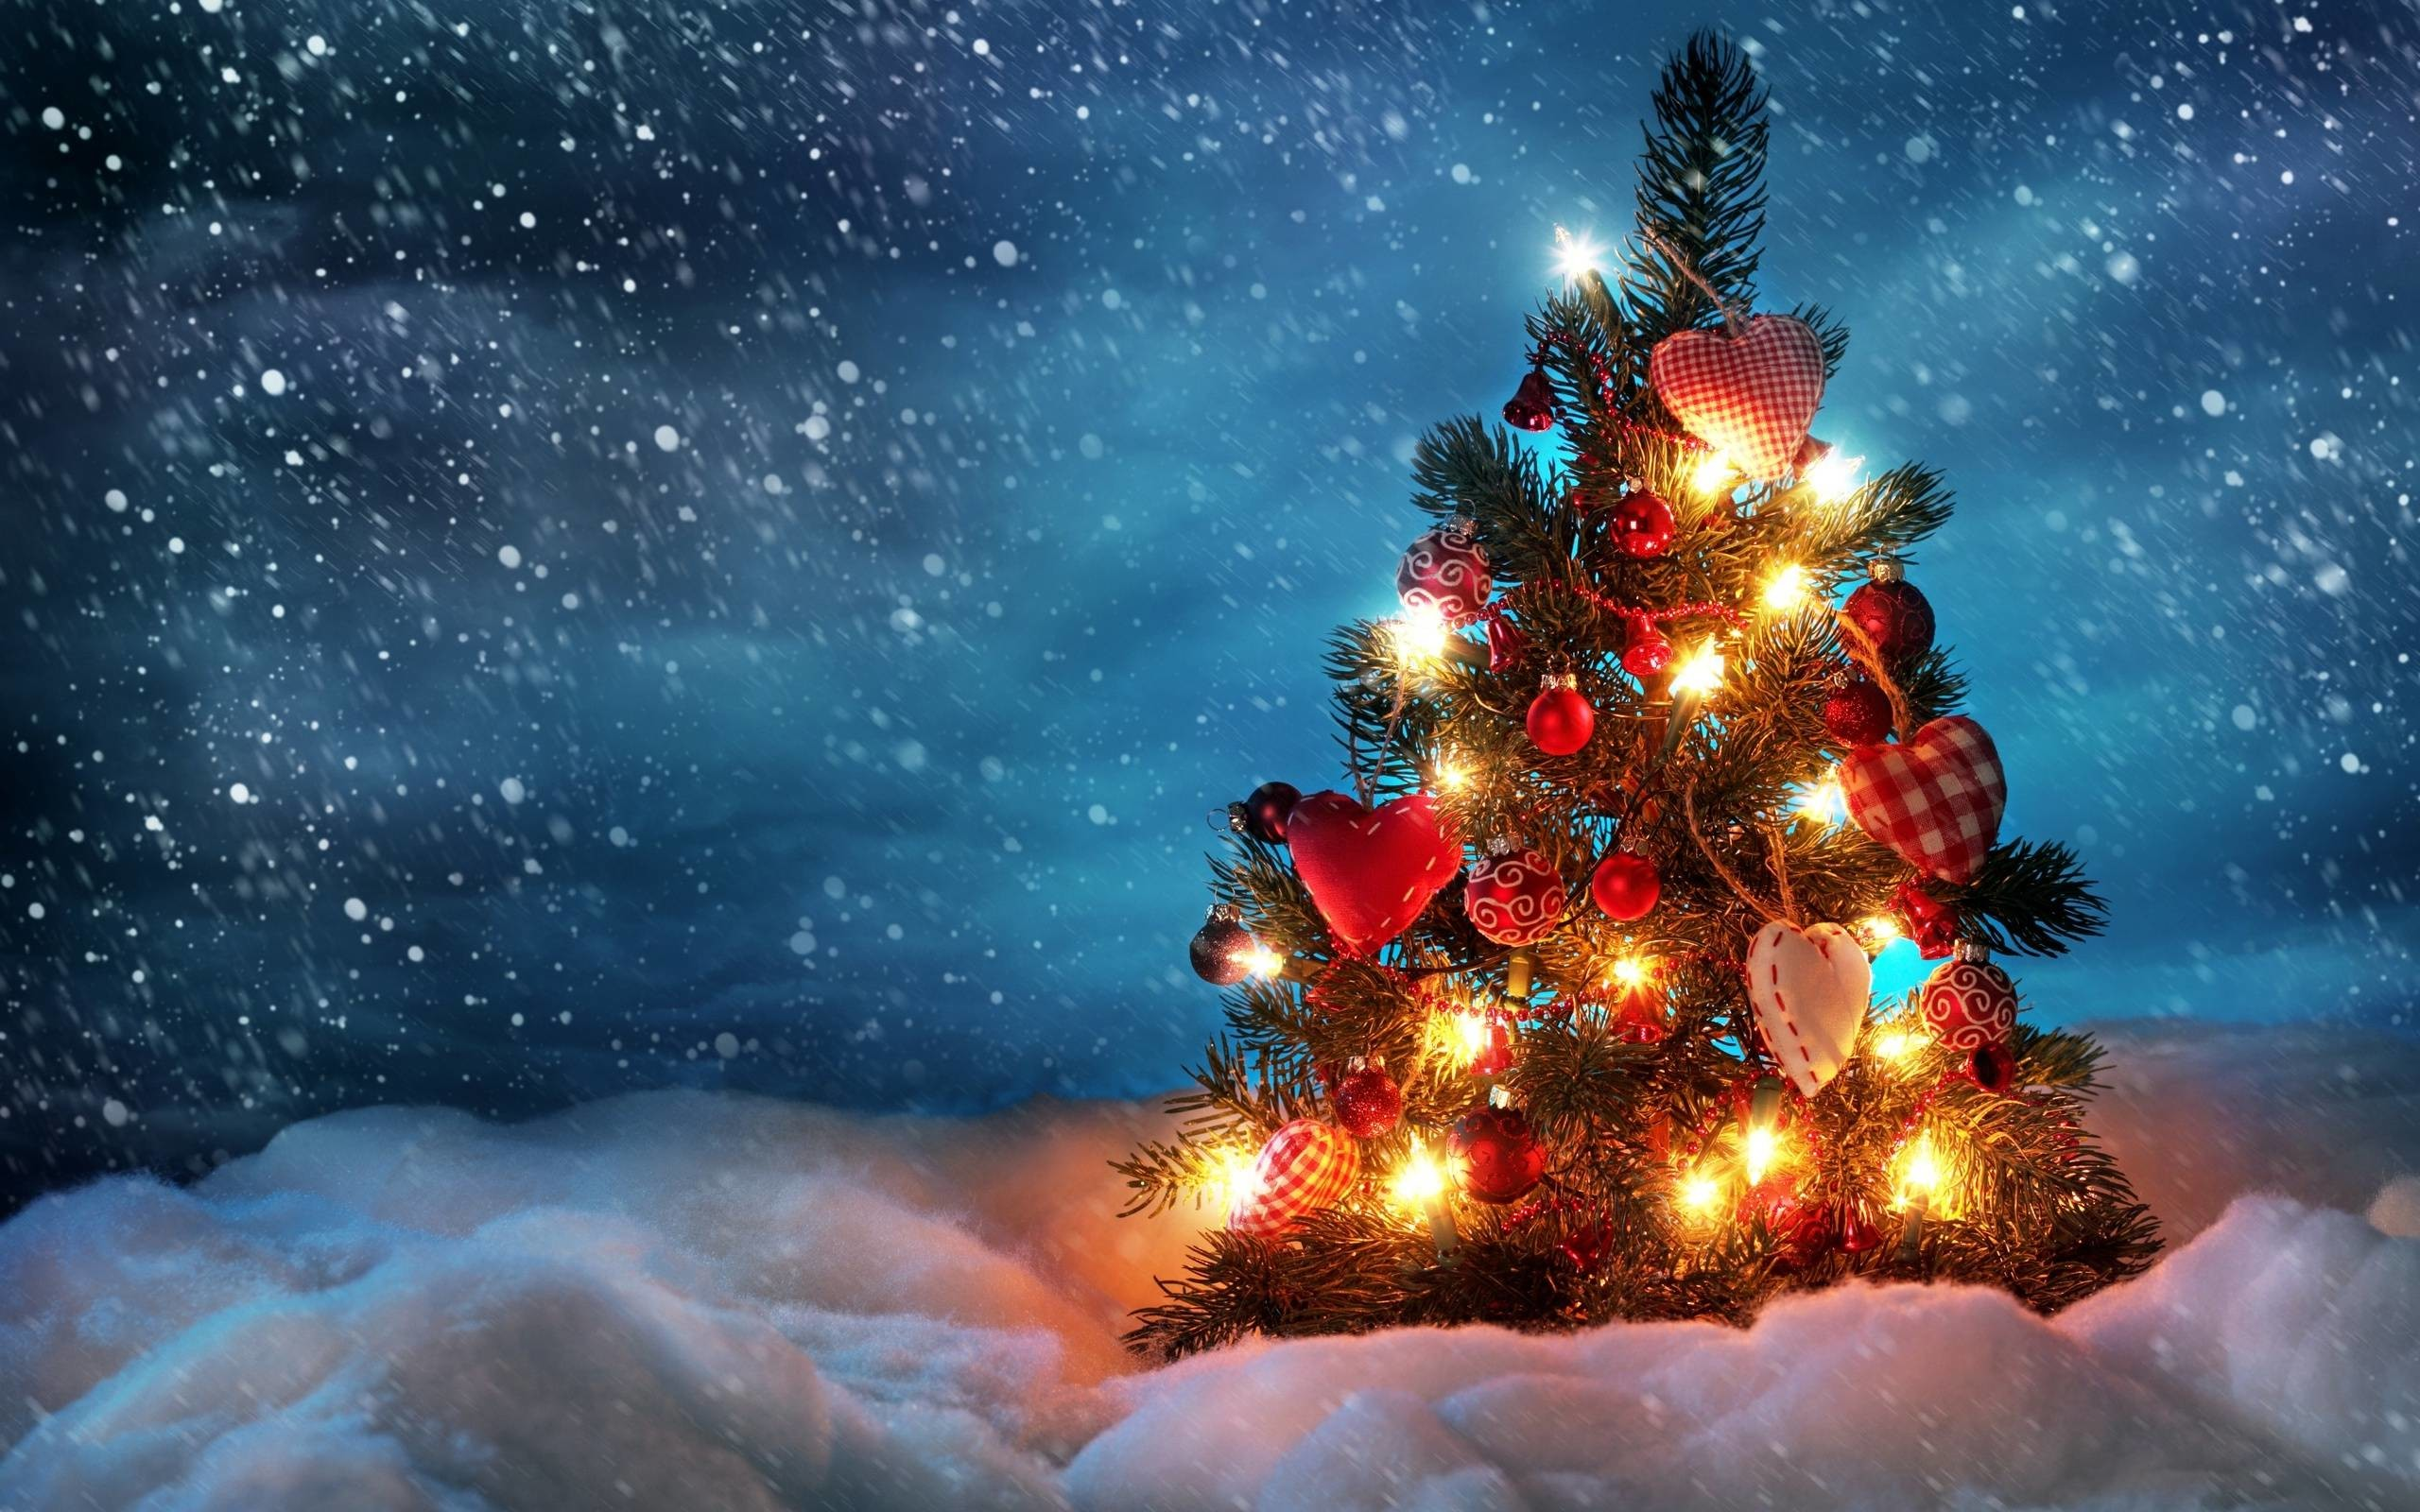 Christmas Ipad Wallpapers: Snowy Christmas Backgrounds (48+ Images